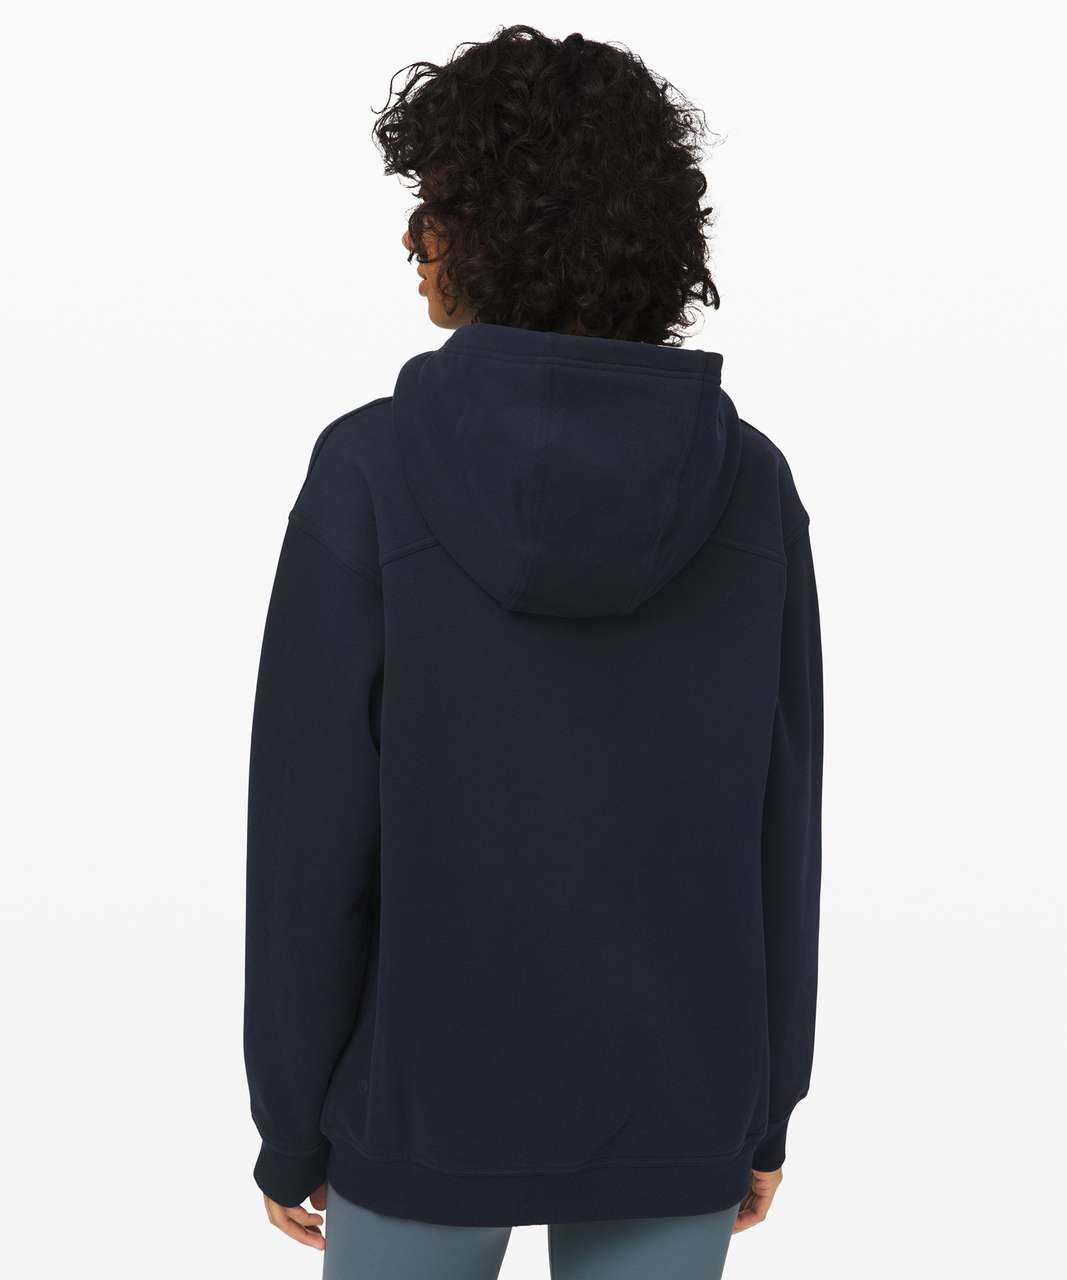 Lululemon All Yours Zip Hoodie - True Navy